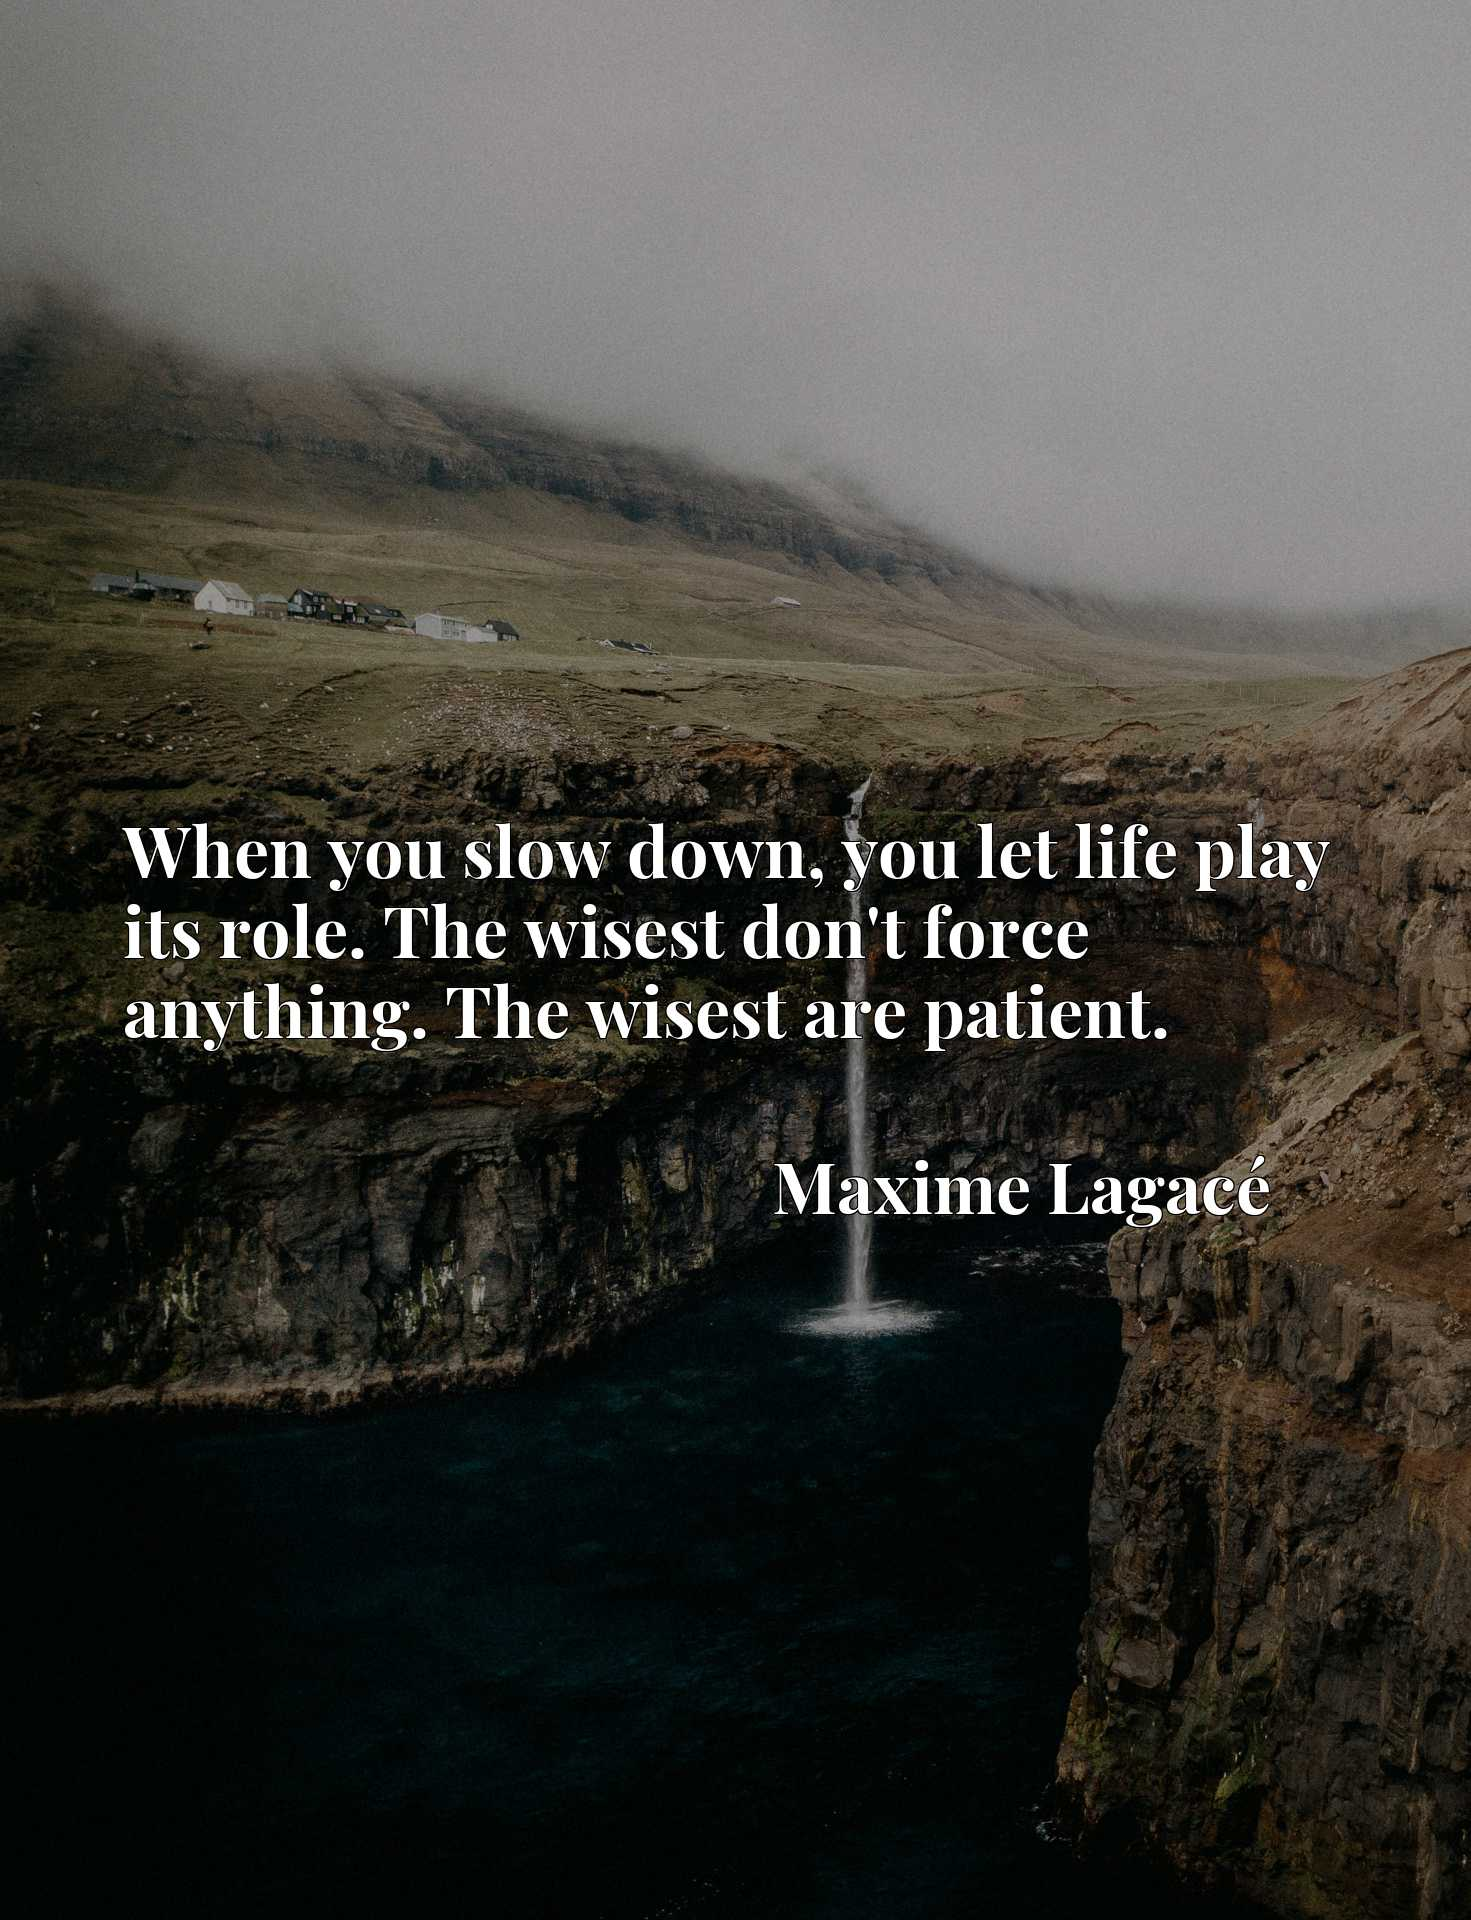 When you slow down, you let life play its role. The wisest don't force anything. The wisest are patient.